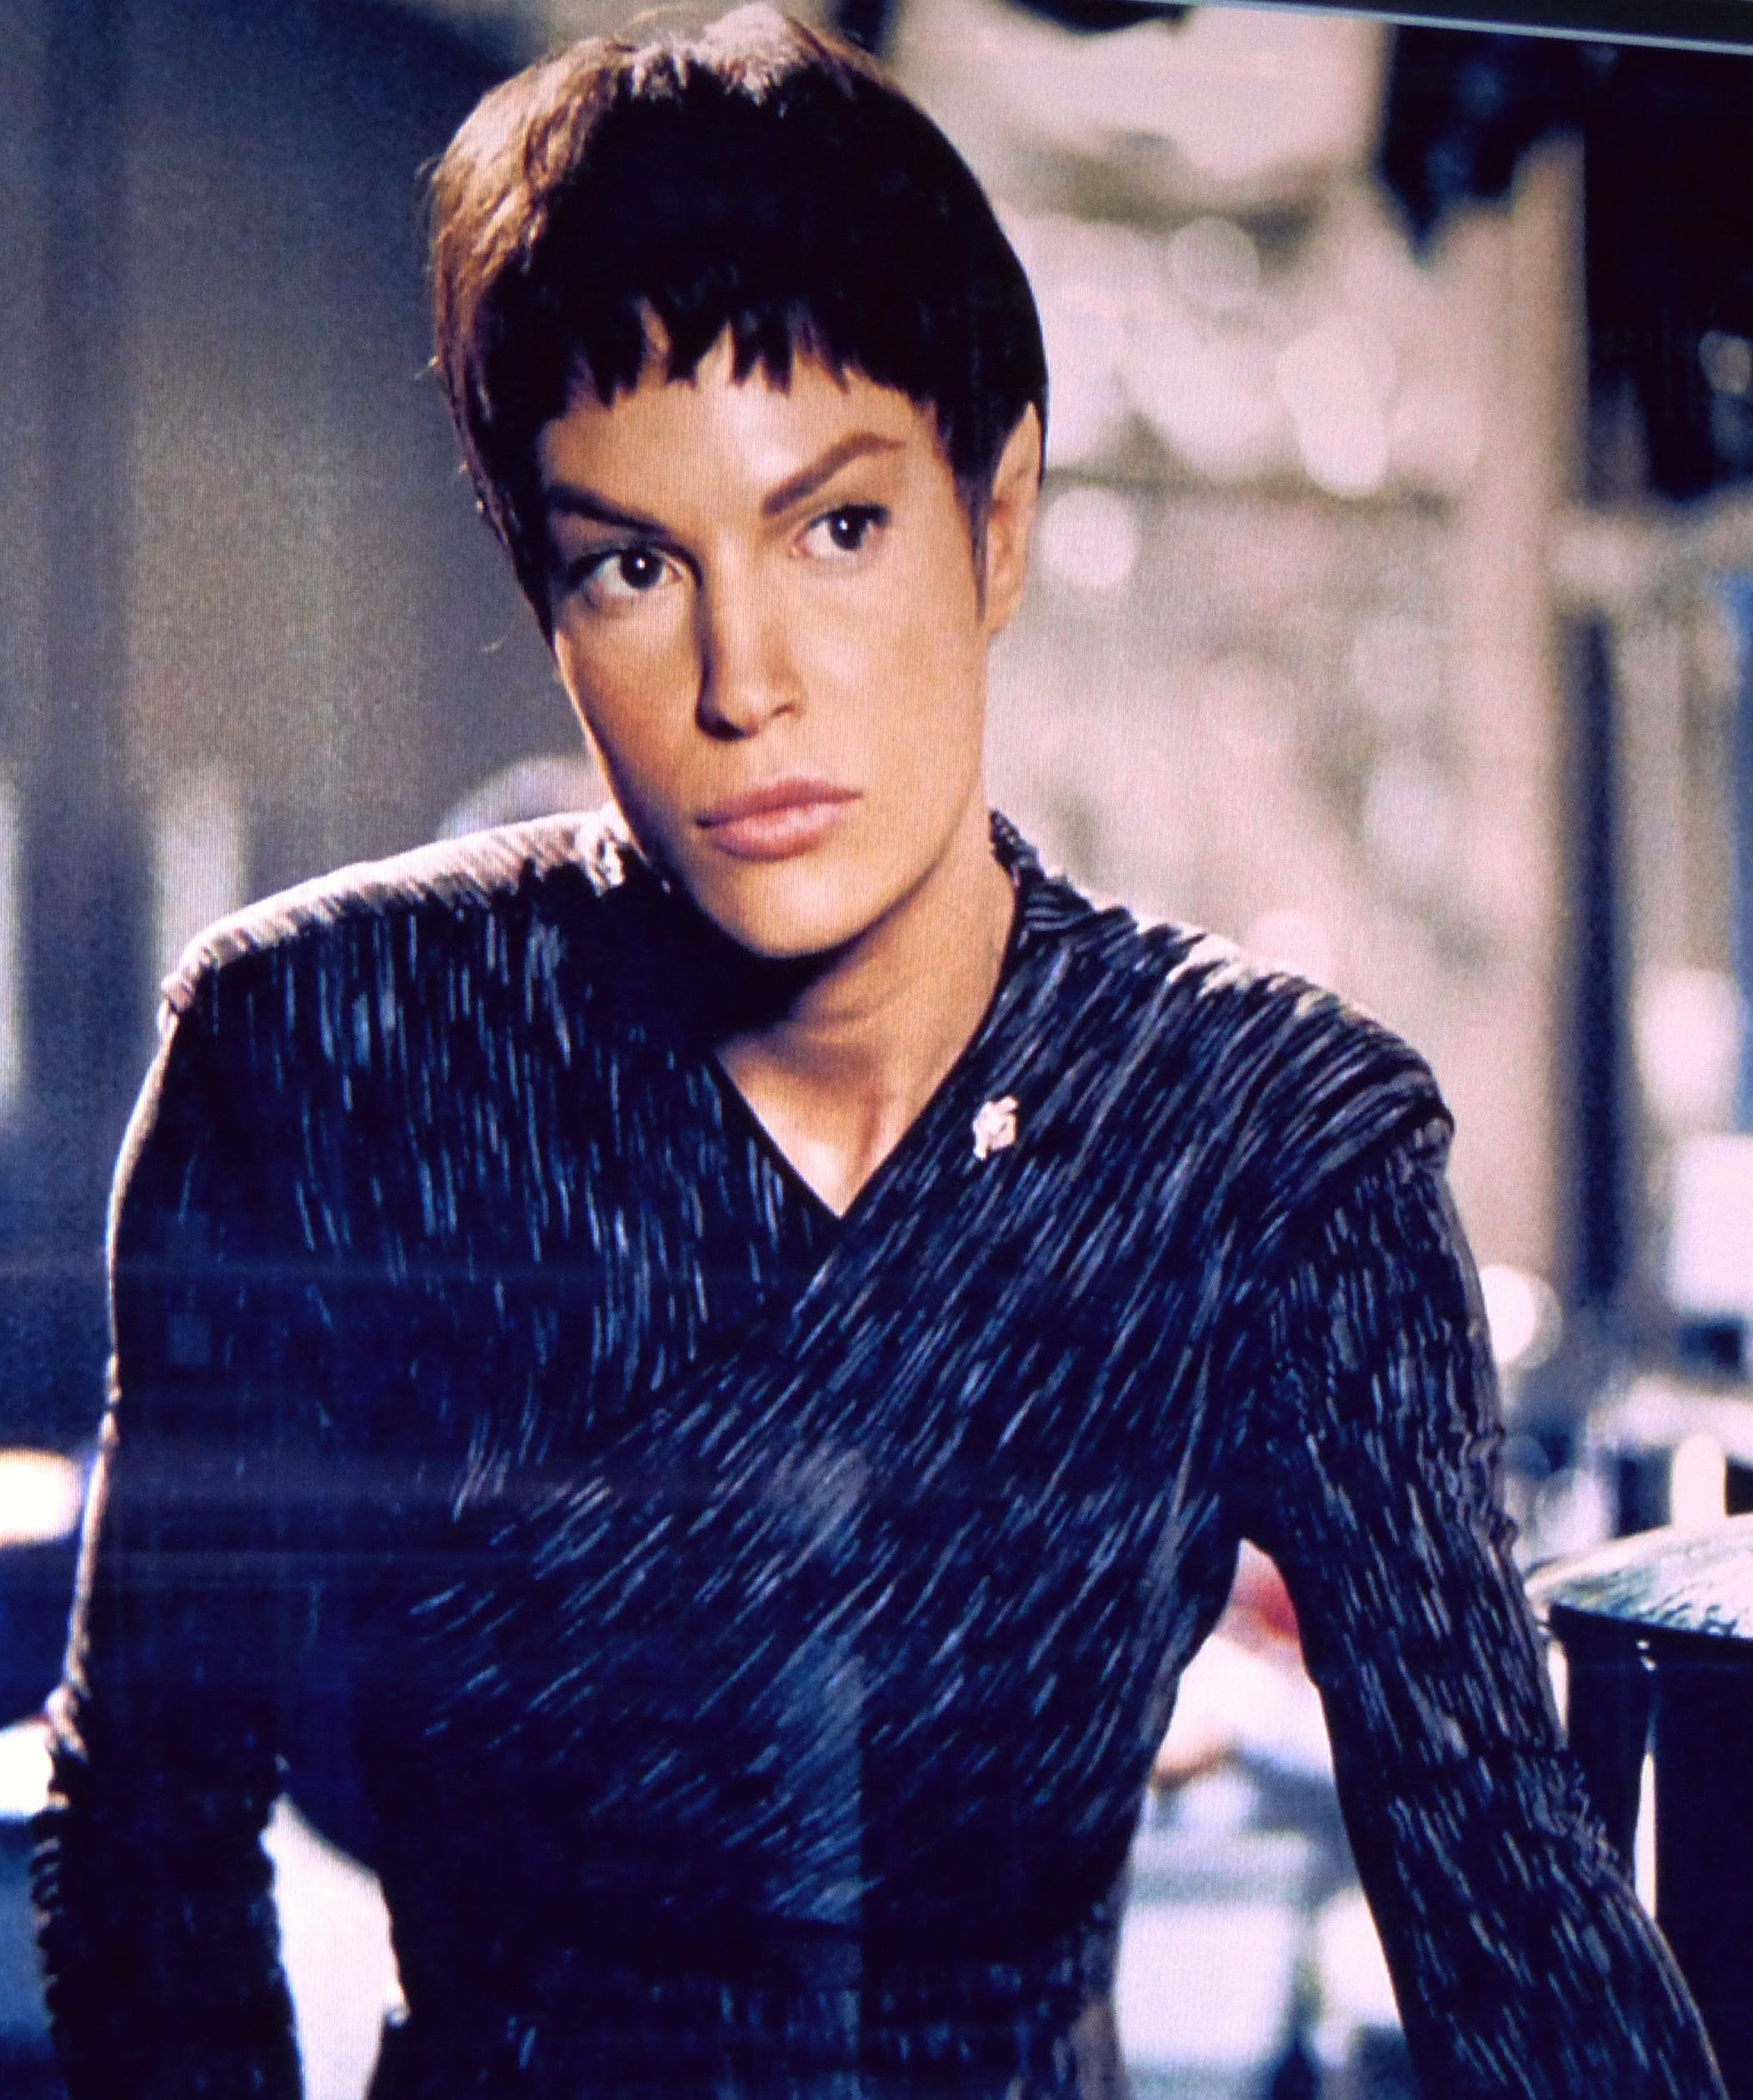 jolene blalock jolene blalock jolene blalock jolene blalock is an american film and television actress and model best known for playing